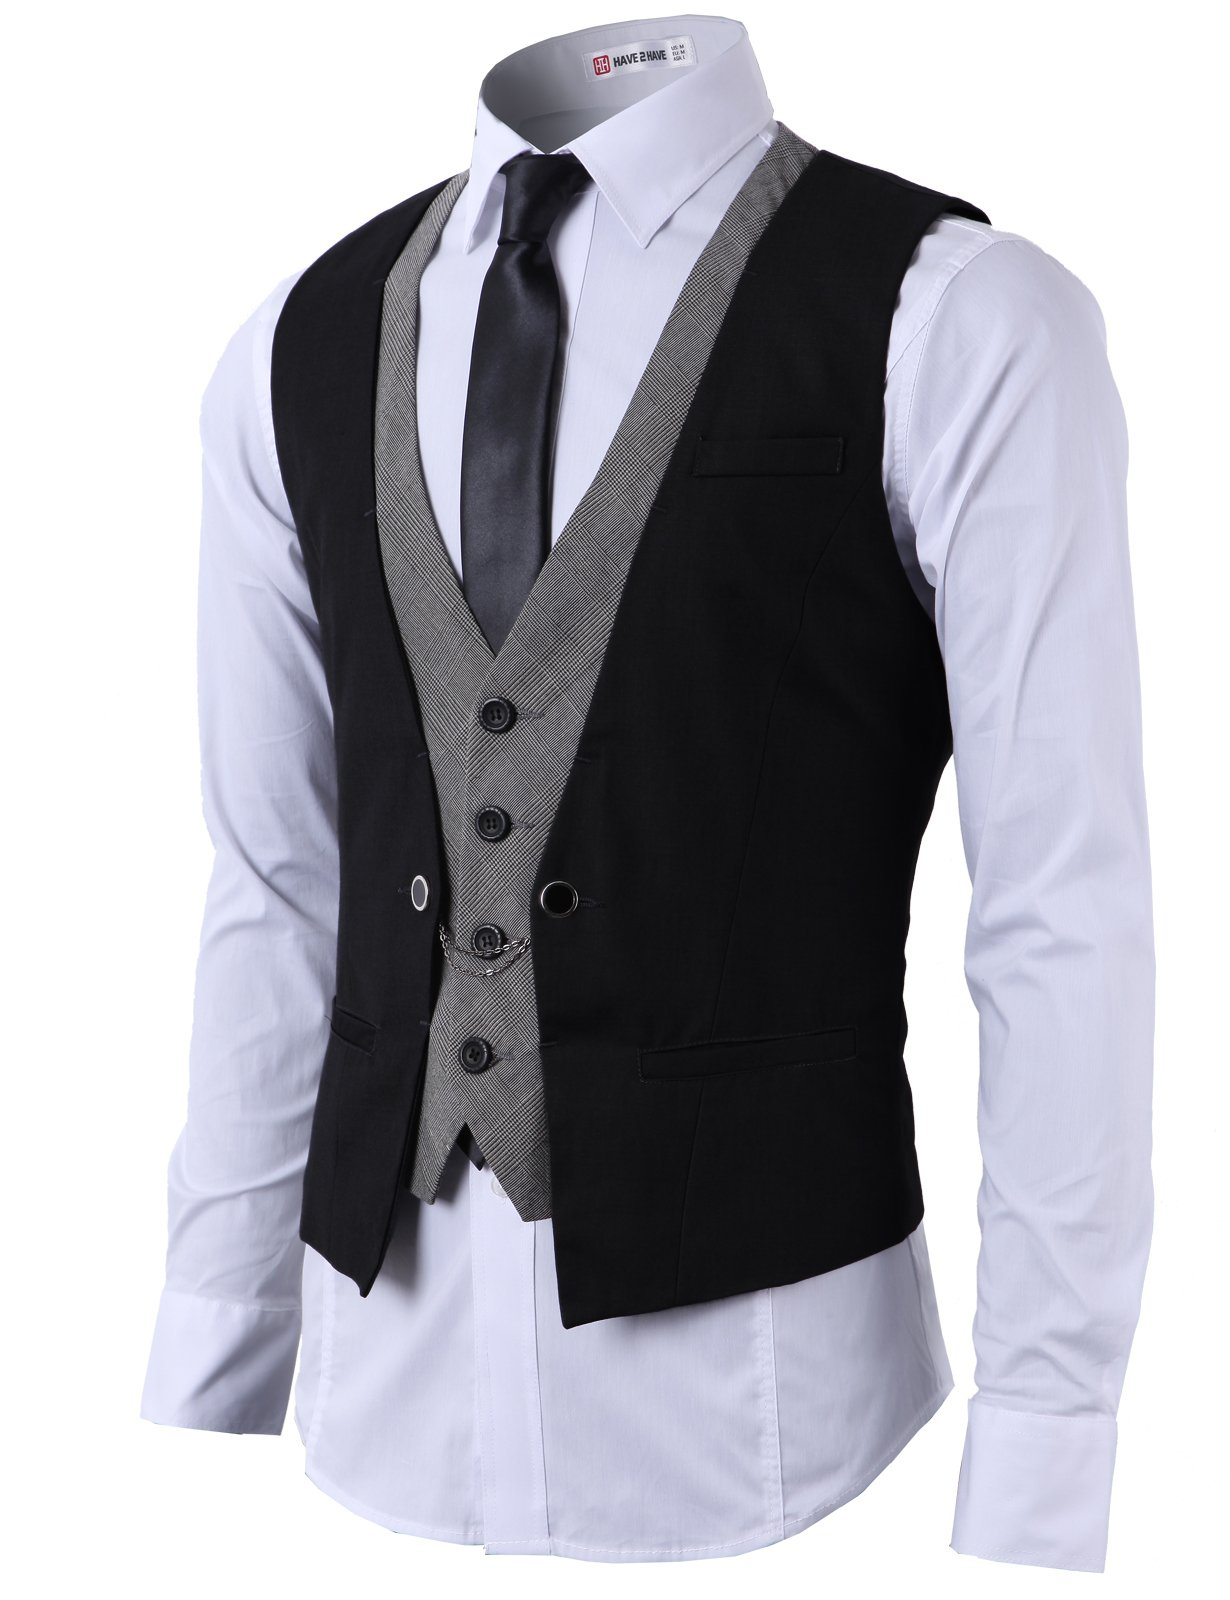 H2H Mens Fashion Business Suit Layered Vest With Chain Rings BLACK(CMOV01), US M (Asia L) by H2H